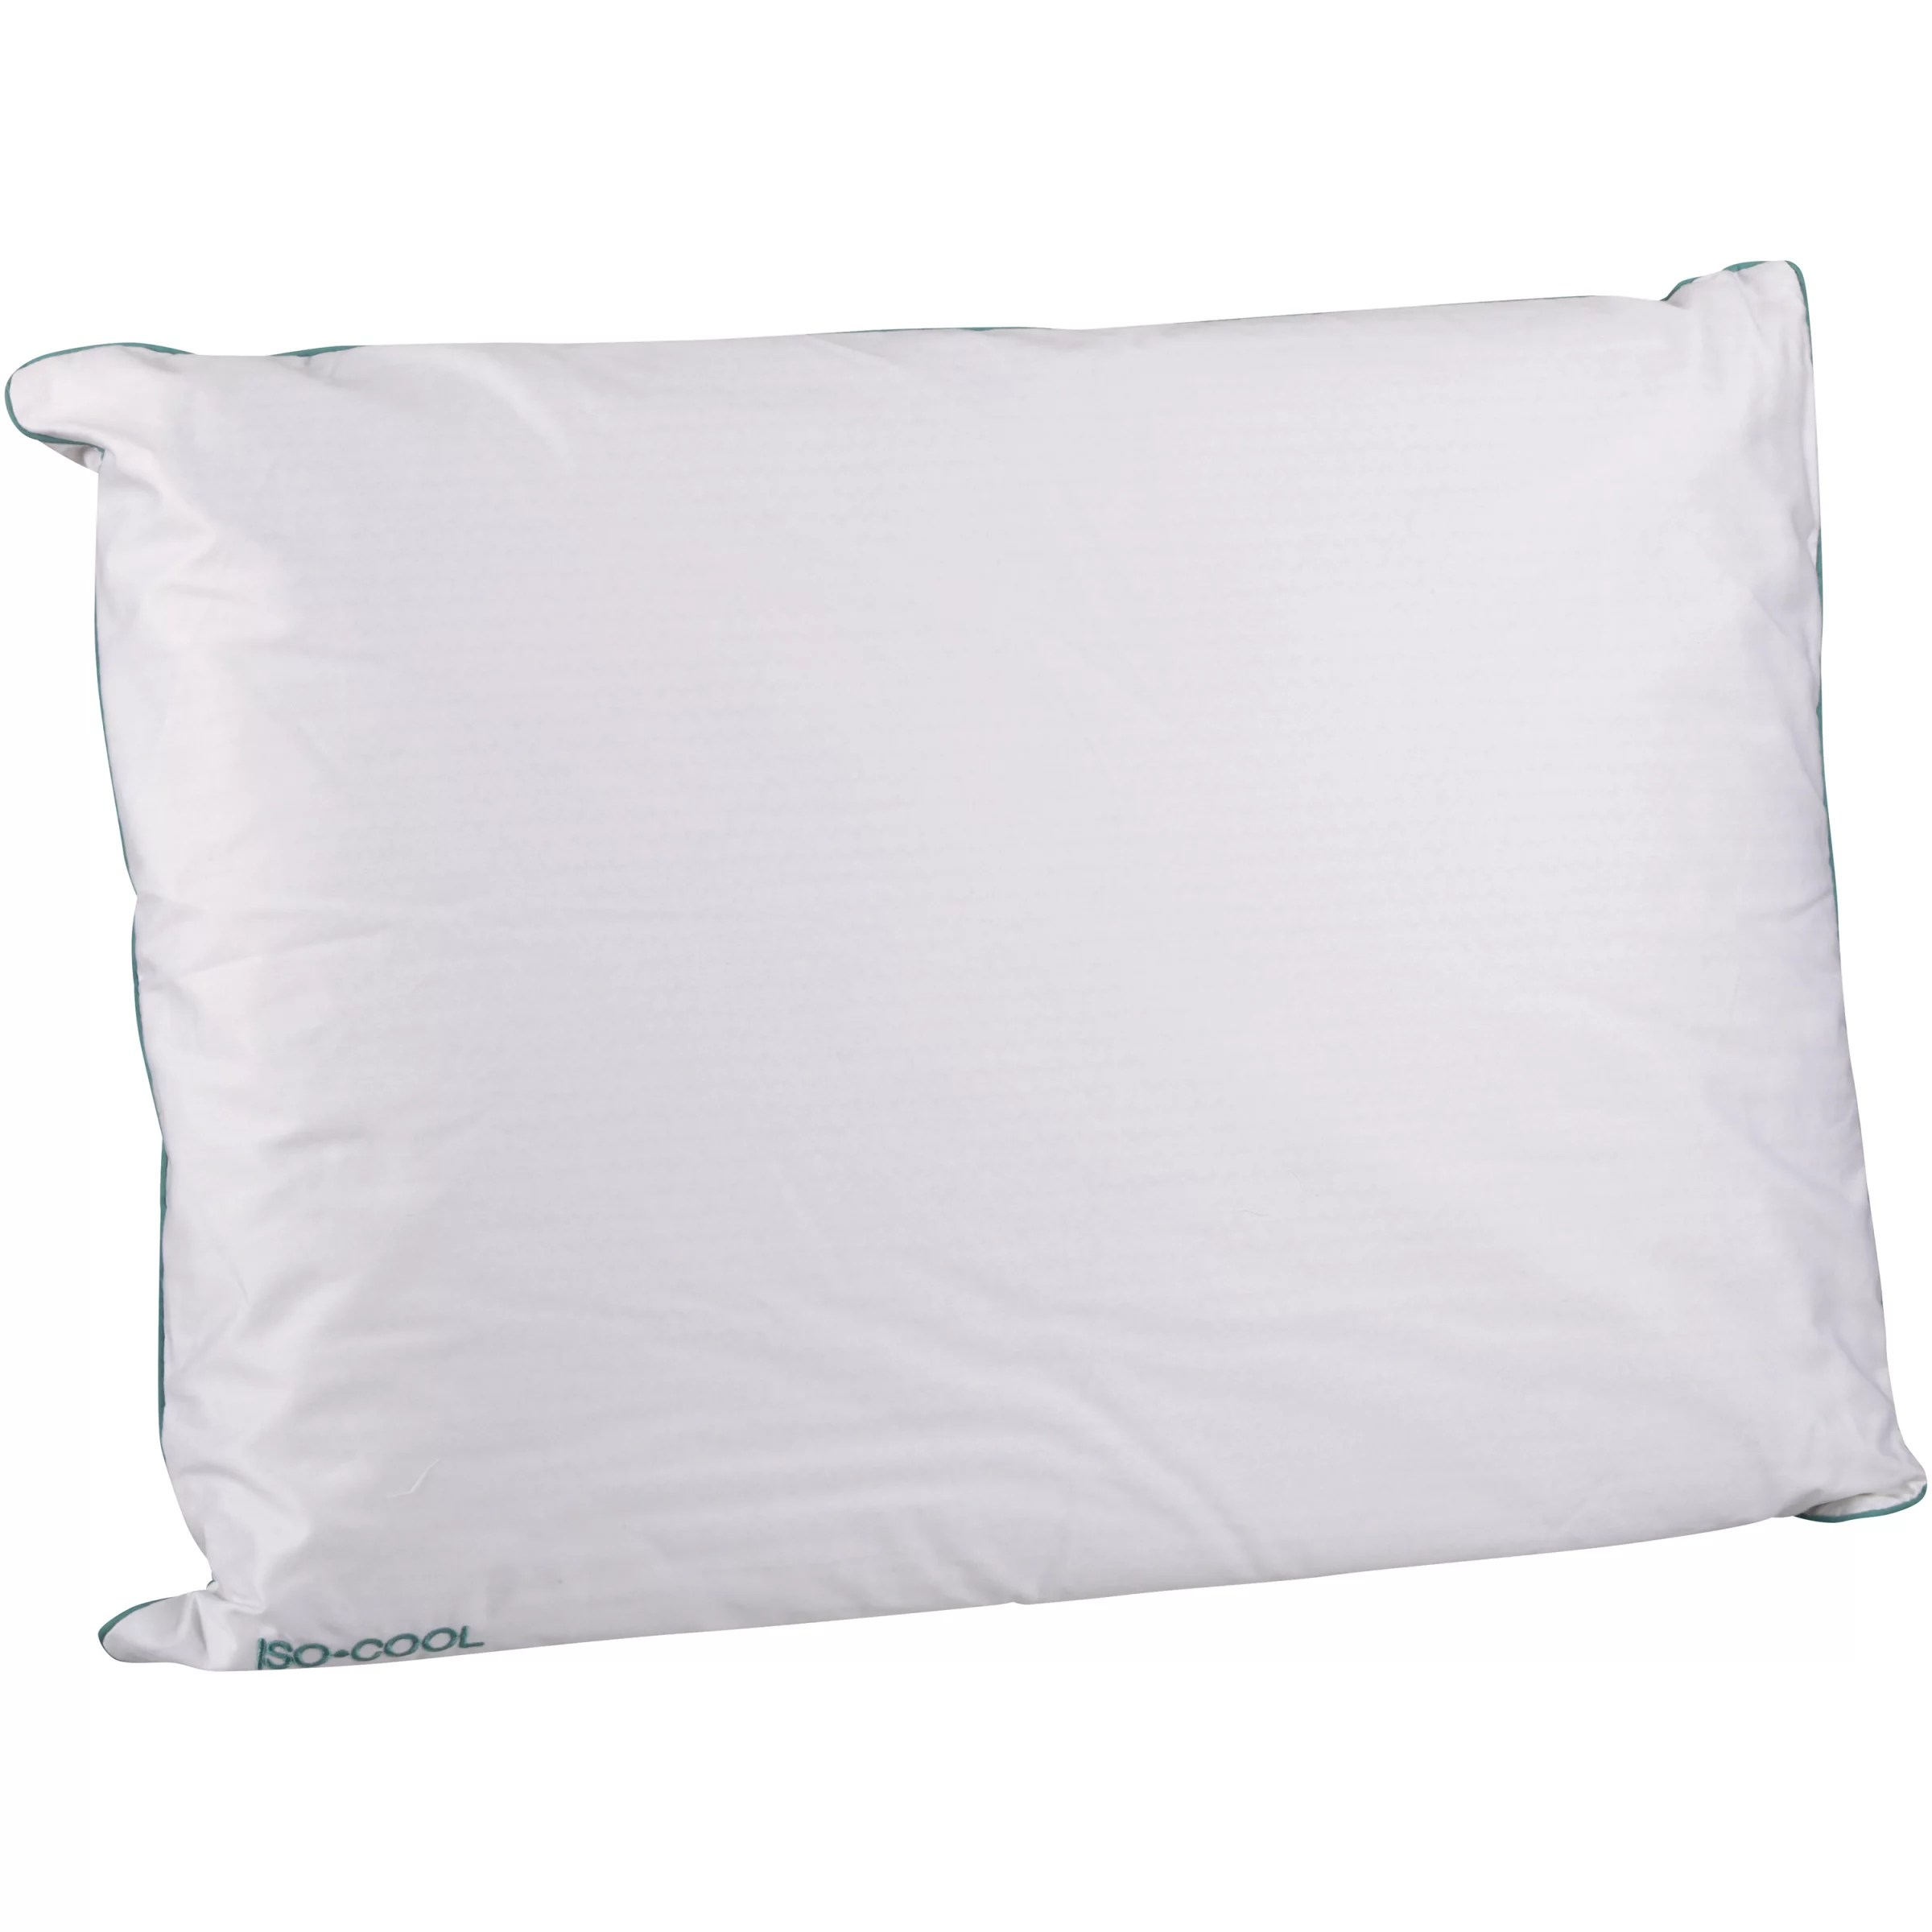 Isotonic IsoCool TheraPure Foam Bed Pillow  Walmartcom